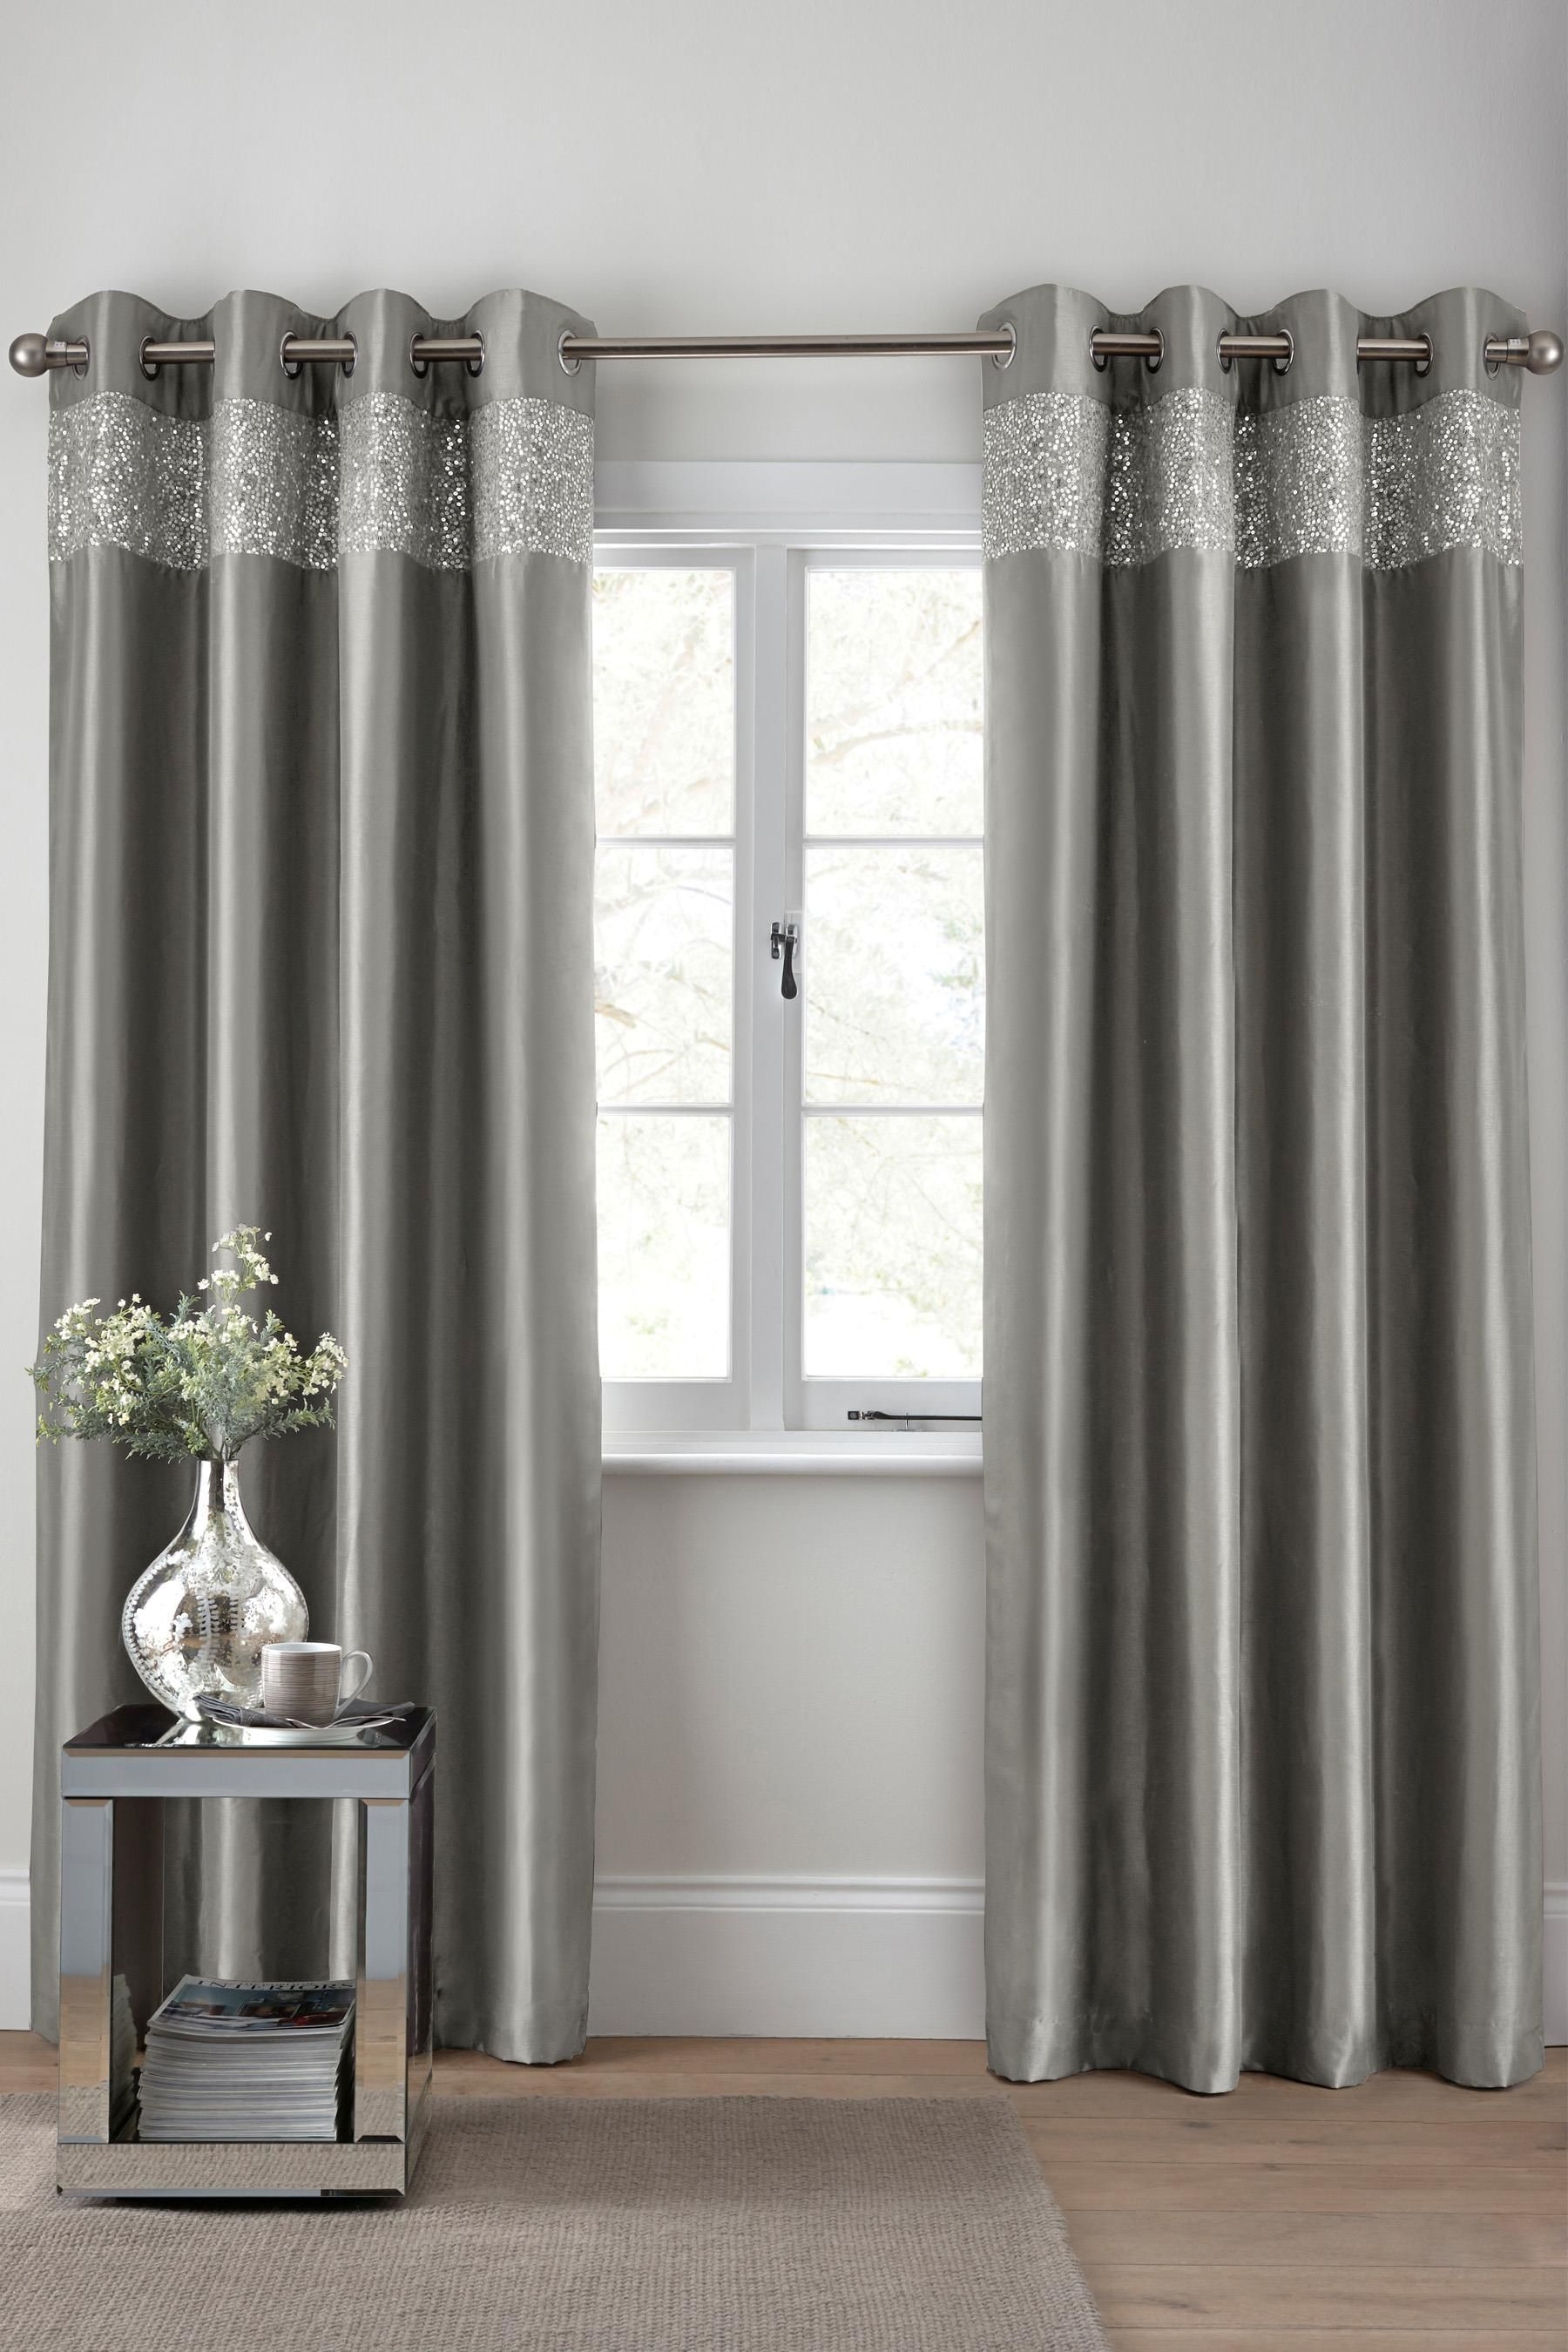 Design My Own Living Room Online Free: Buy Shimmer Band Eyelet Curtains From The Next UK Online